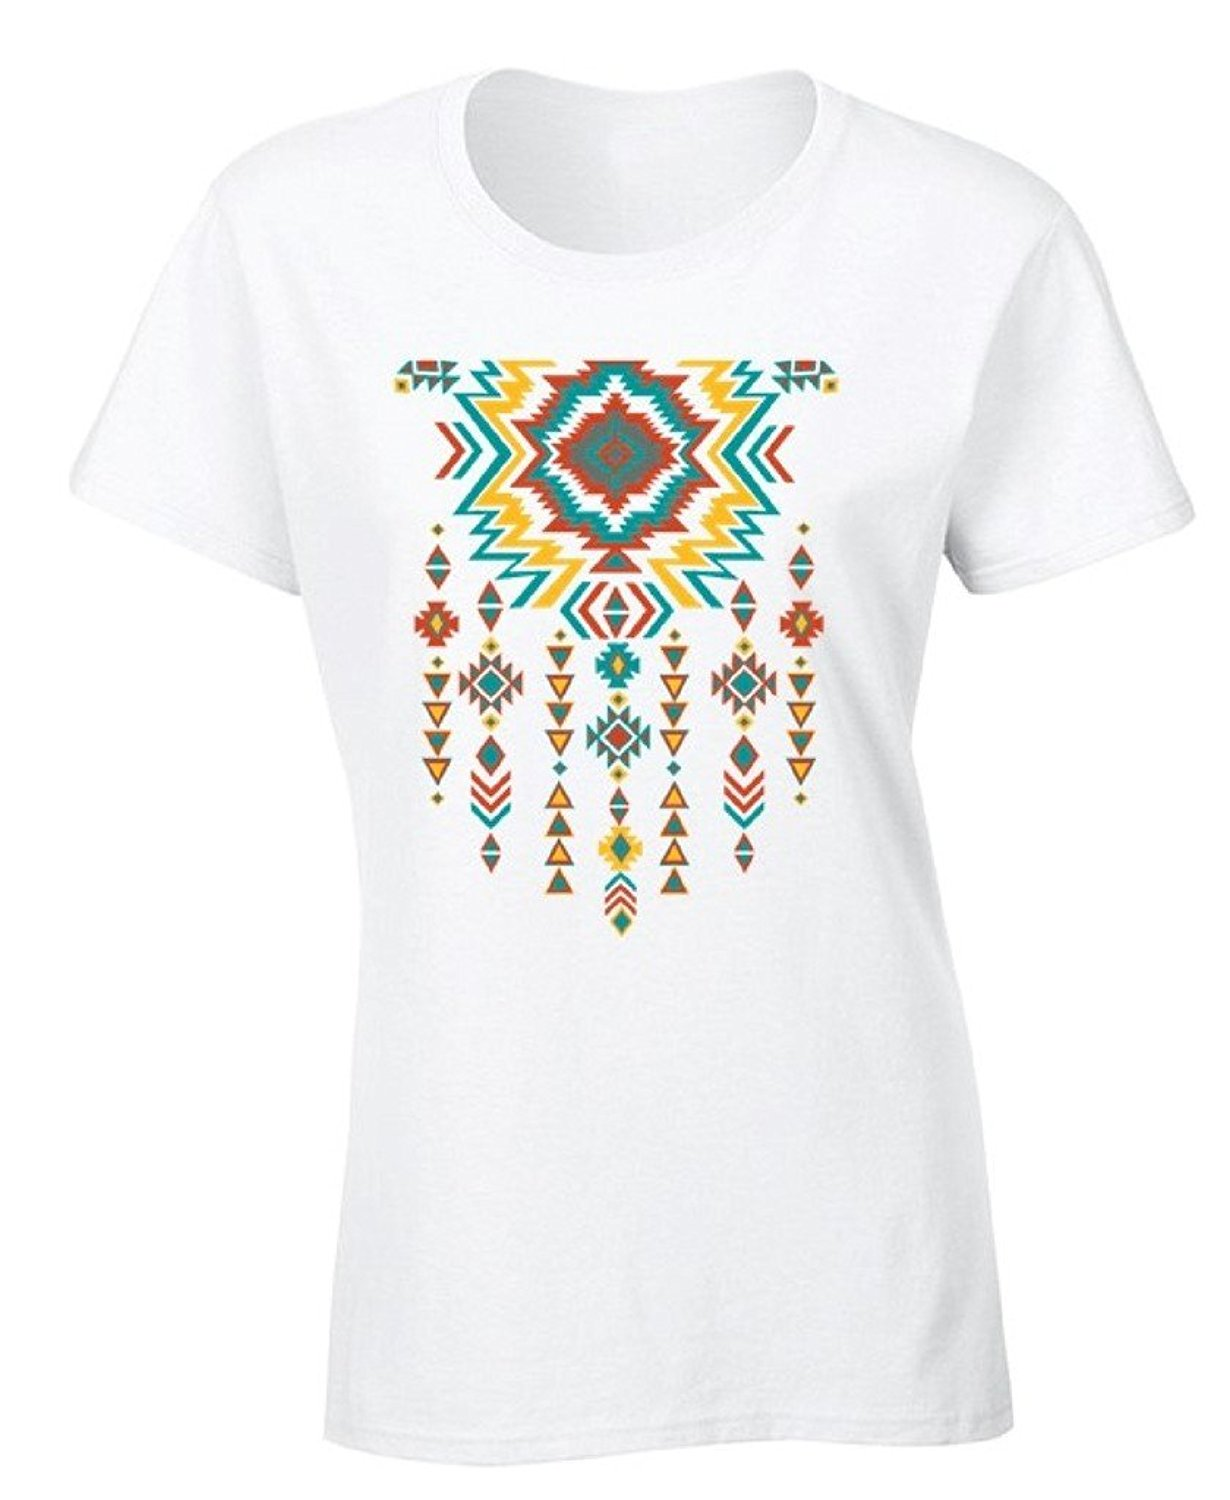 Shirt design blank